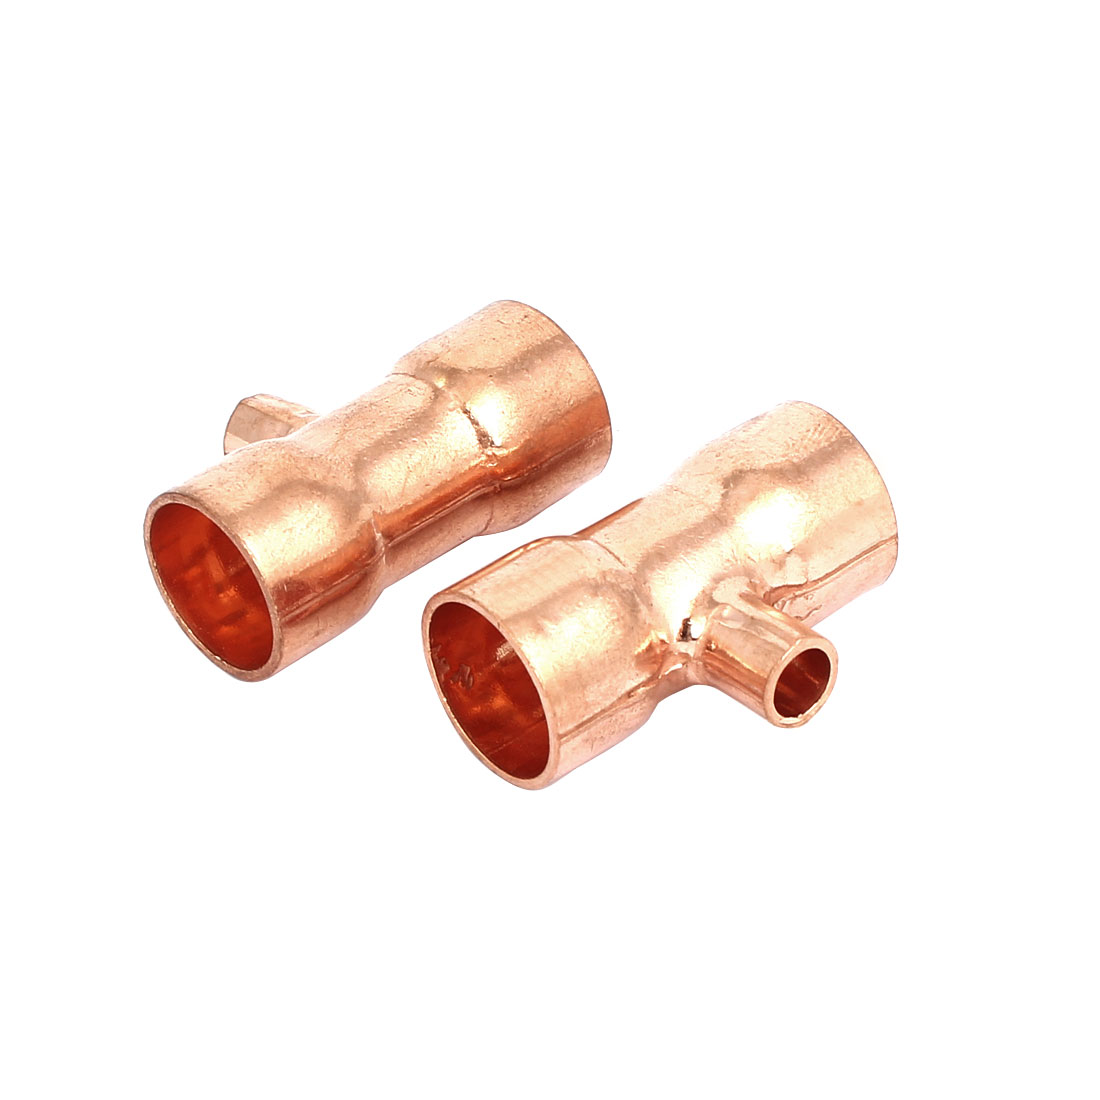 16mmx6.35mm Copper Tee Reducing Fitting Air Conditioner Plumbing Accessory 2pcs